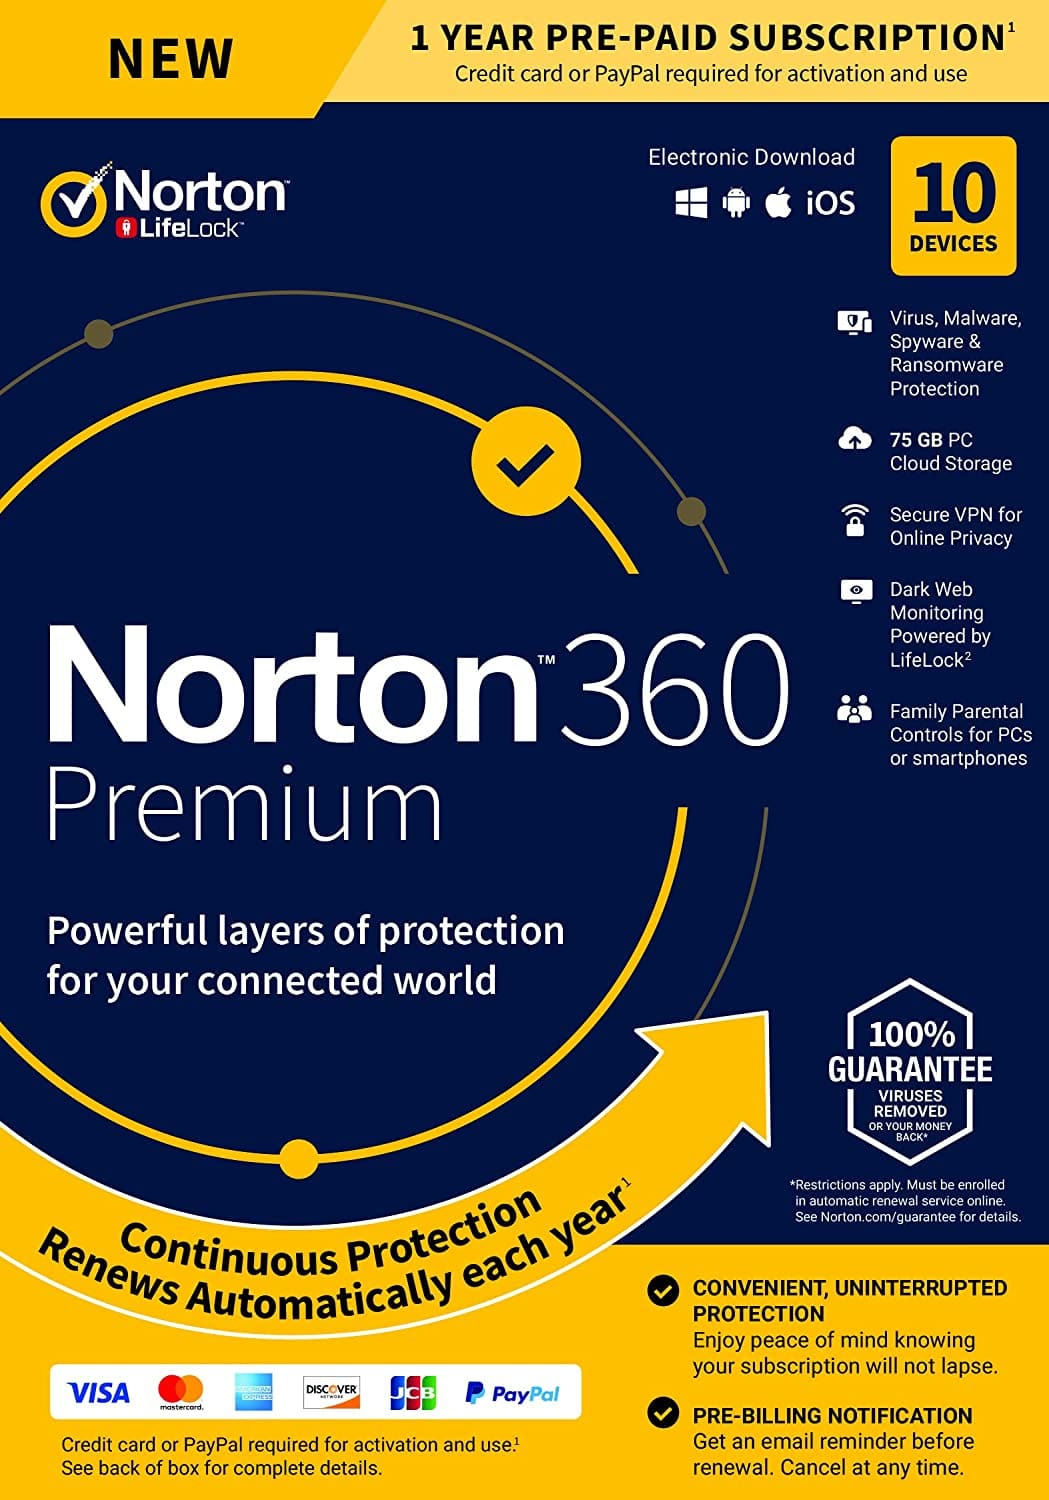 Norton 360 Premium – Antivirus Software for 10 Devices with Auto Renewal -Includes VPN,PC Cloud Backup & Dark Web Monitoring Powered by LifeLock [Key card] - $29.99 & FREE Shipping